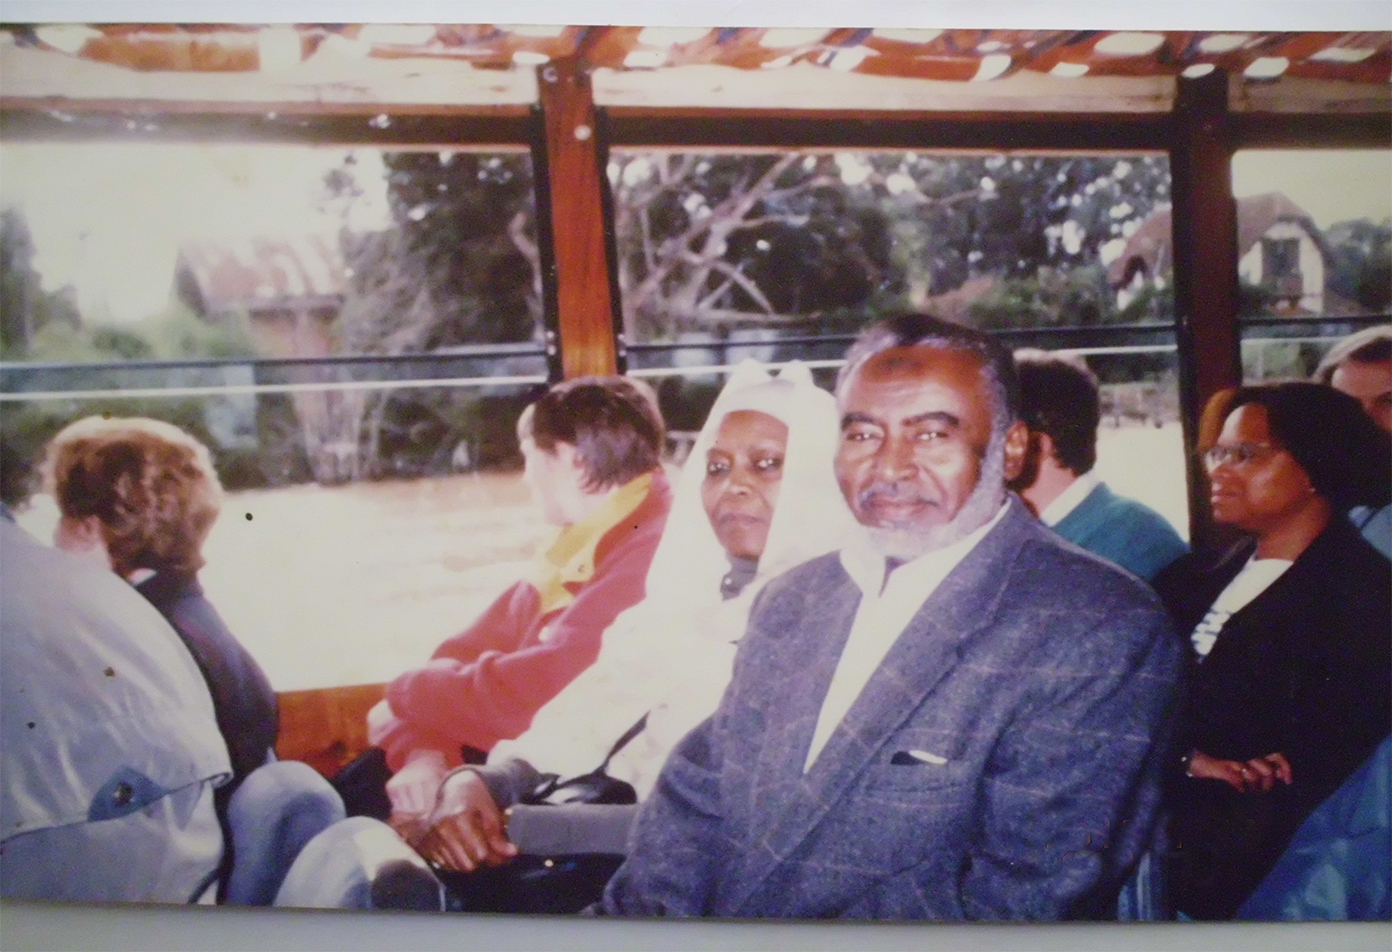 Prof-Elsheikh-and-Mrs-Mahgoub-on-boat-trip-on-the-Buenas-Aires-while-attending-ISHAM-meeting-in-Argentina-2000